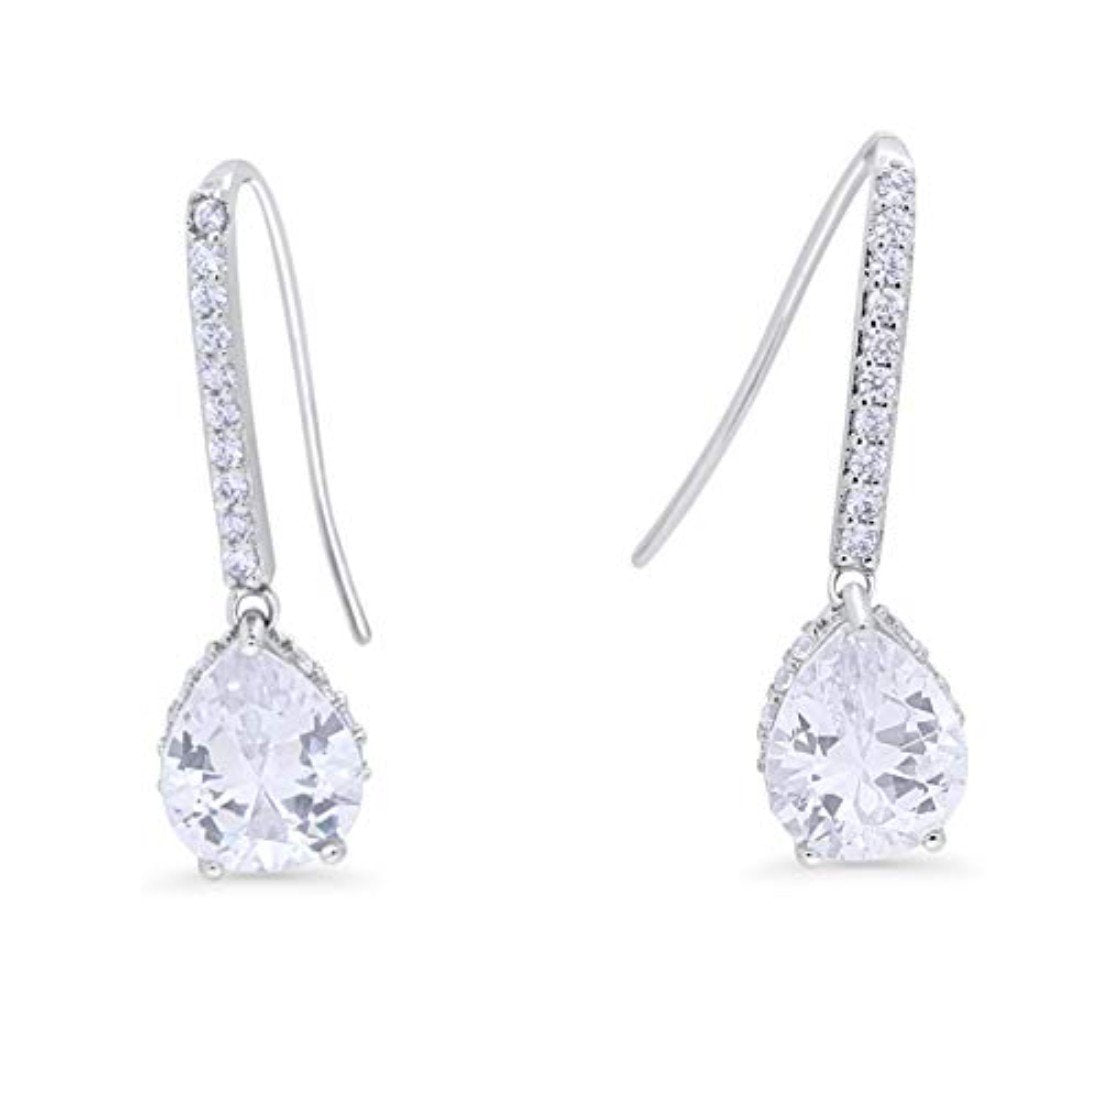 Teardrop Pear Dangling Fish Hook Earrings Simulated CZ 925 Sterling Silver Bridesmaid